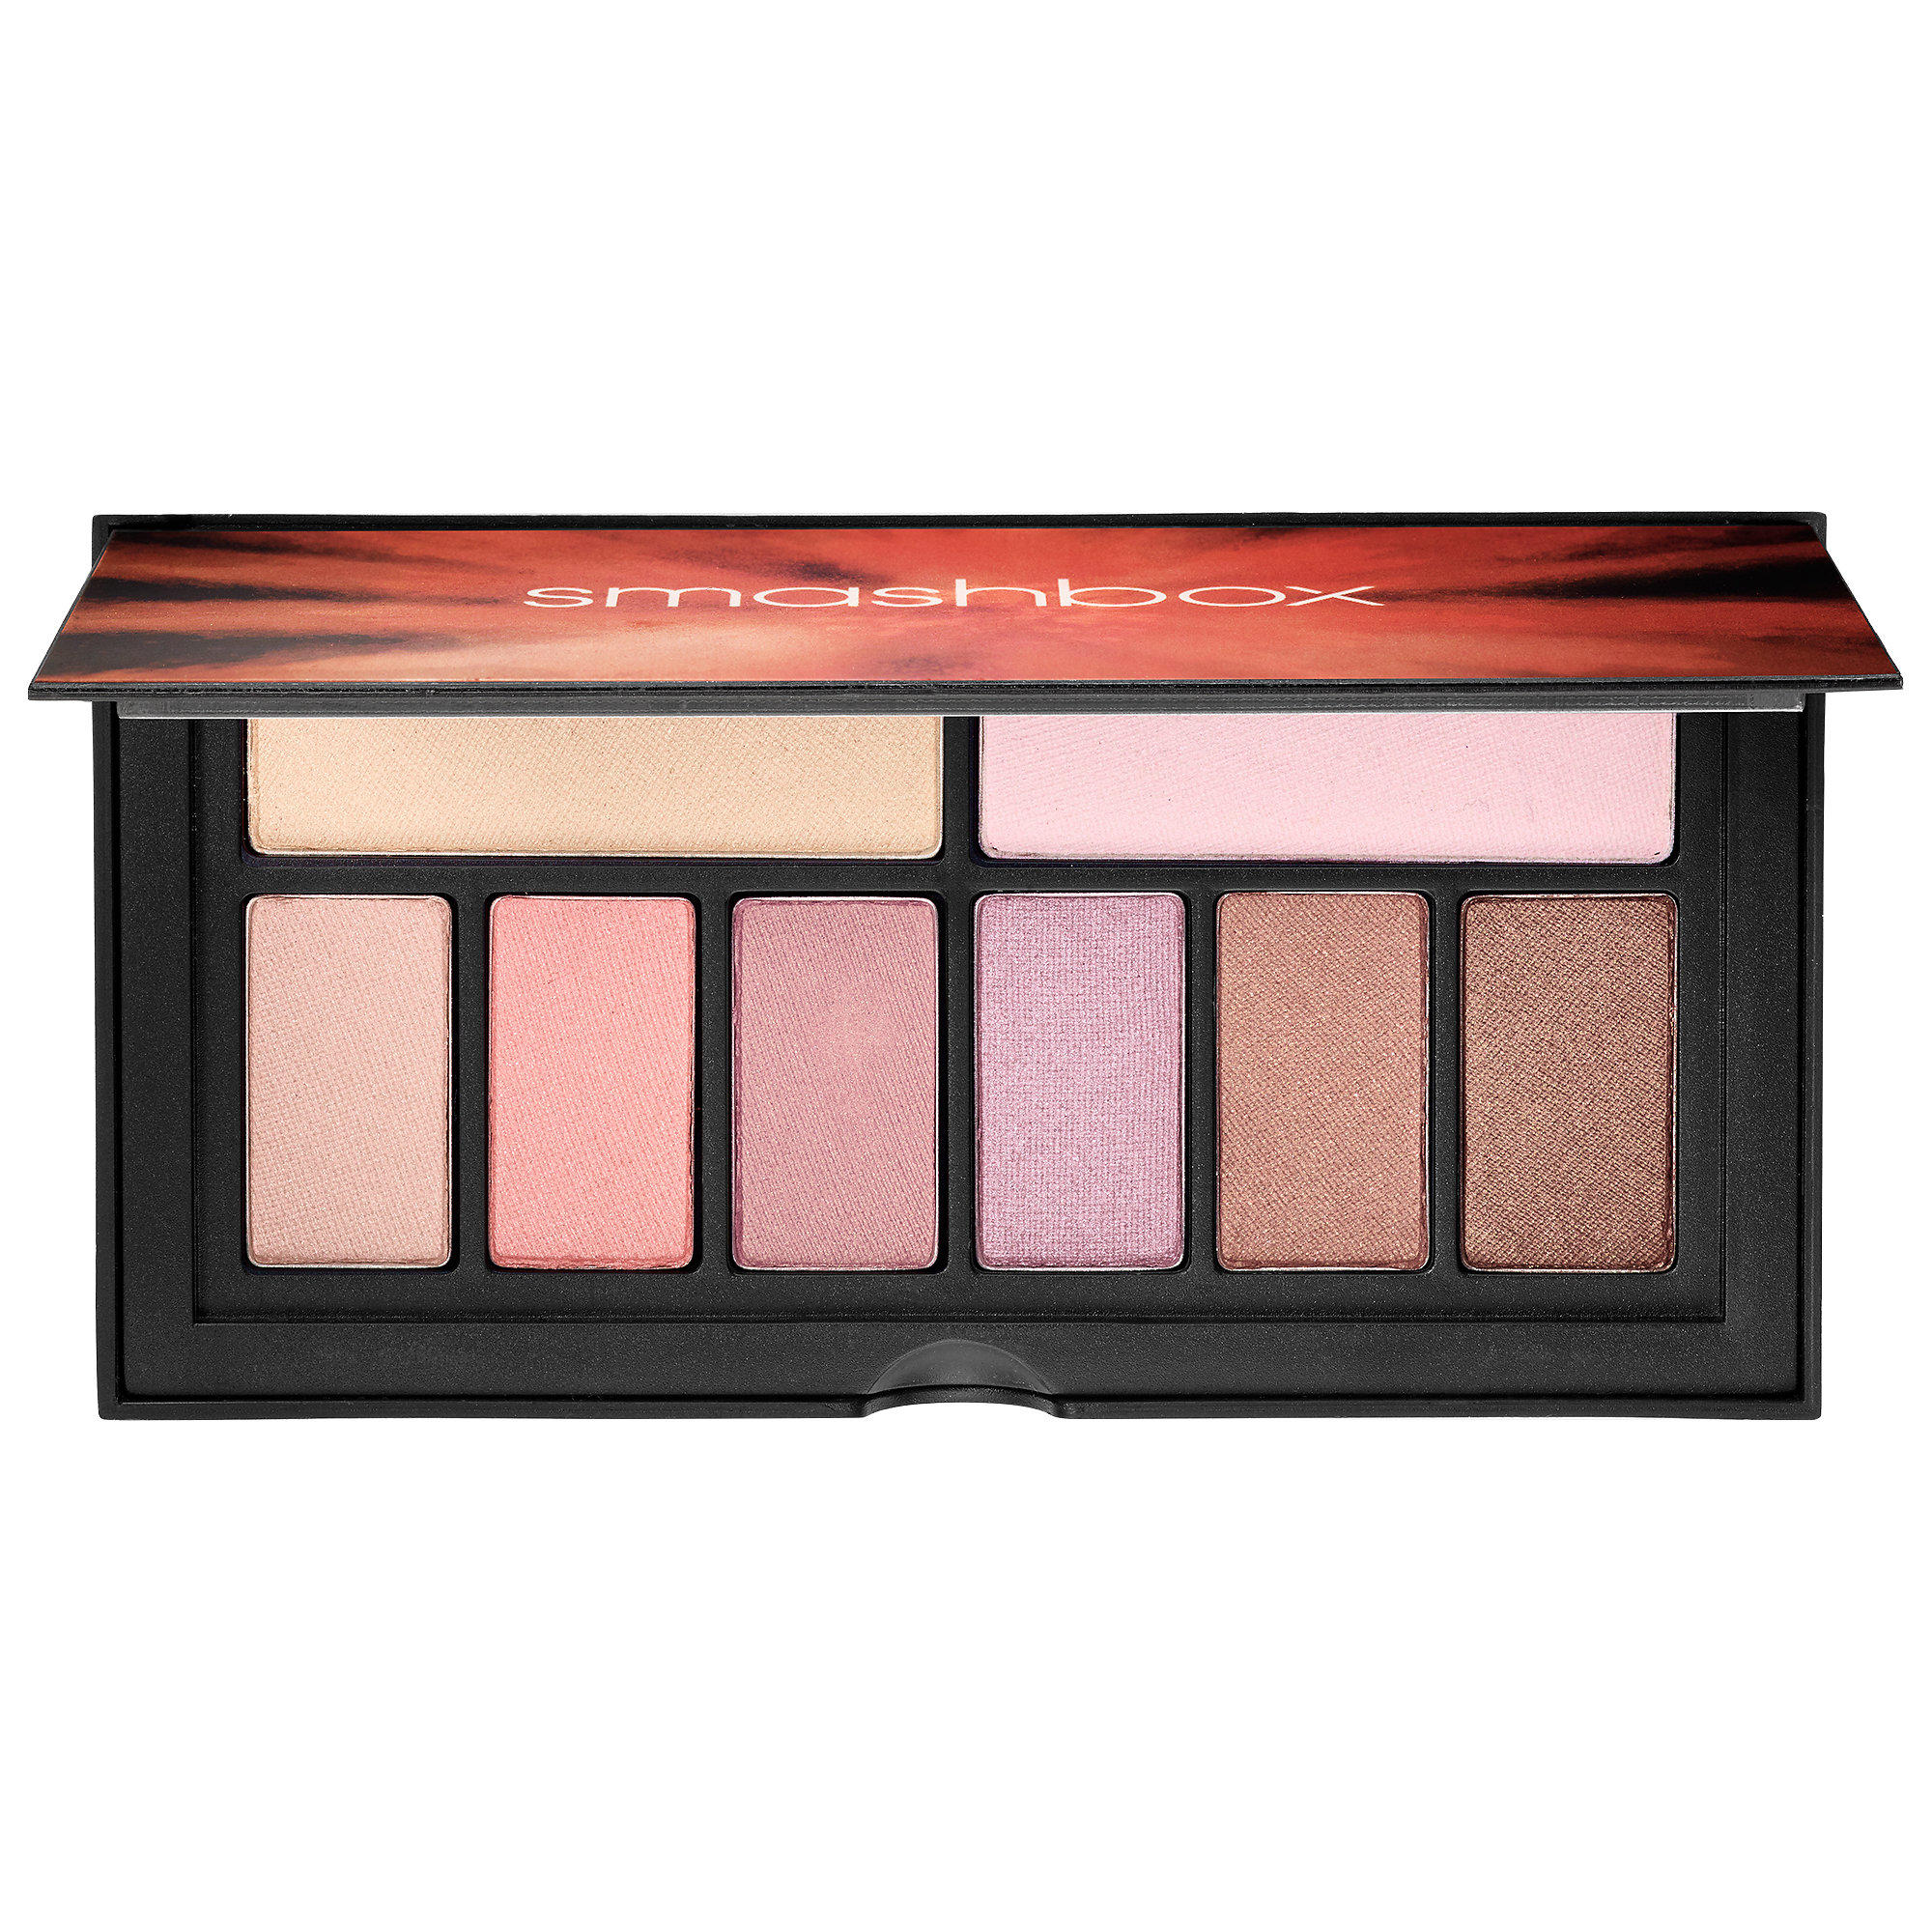 Smashbox Cover Shot: Softlight Eye Palette